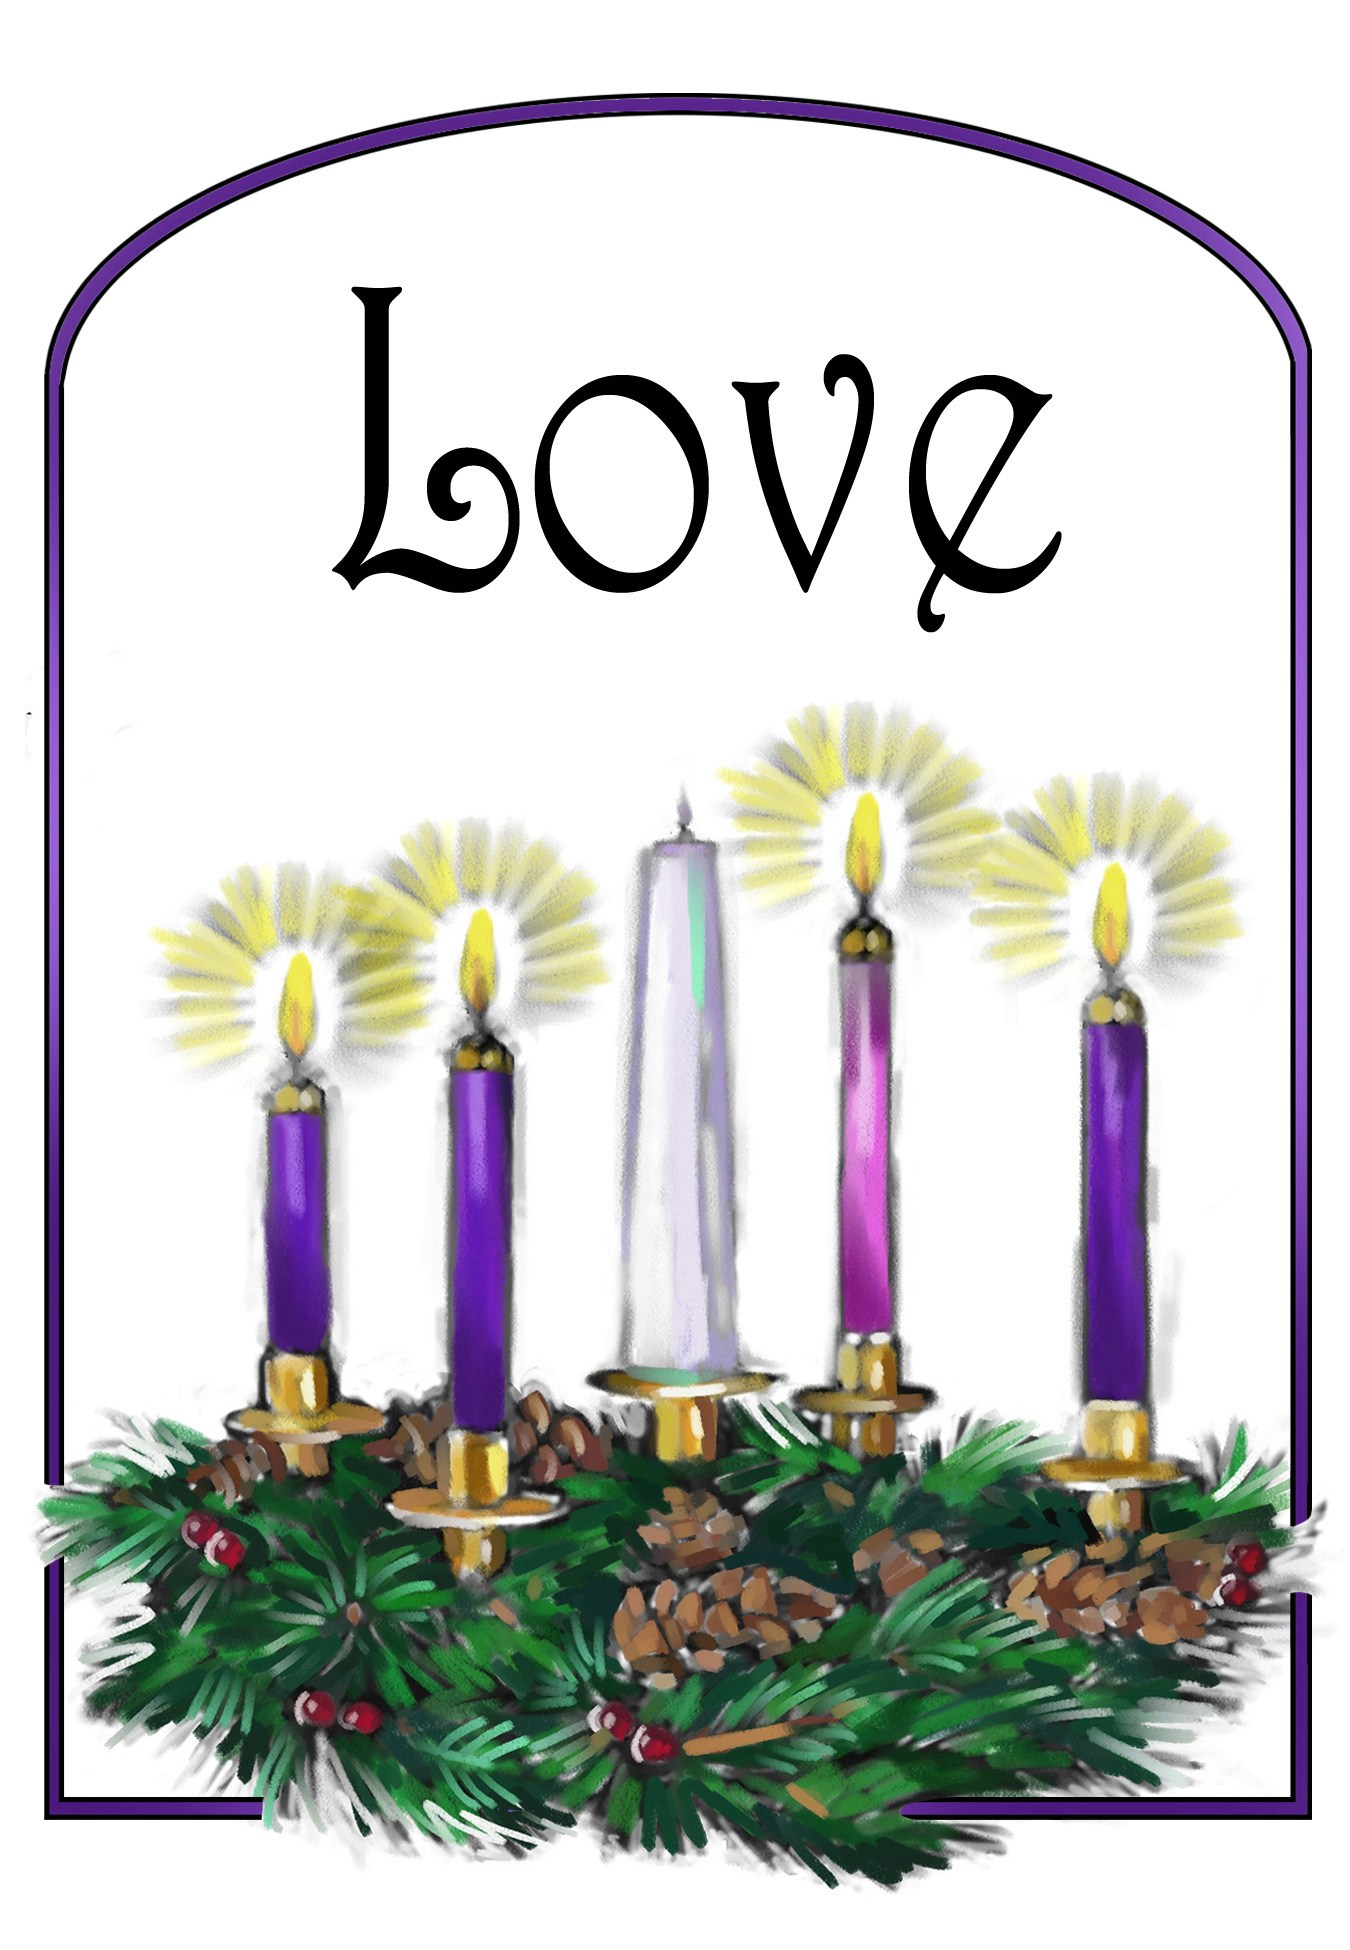 clipart free library 4th clipart sunday advent. Download for free png